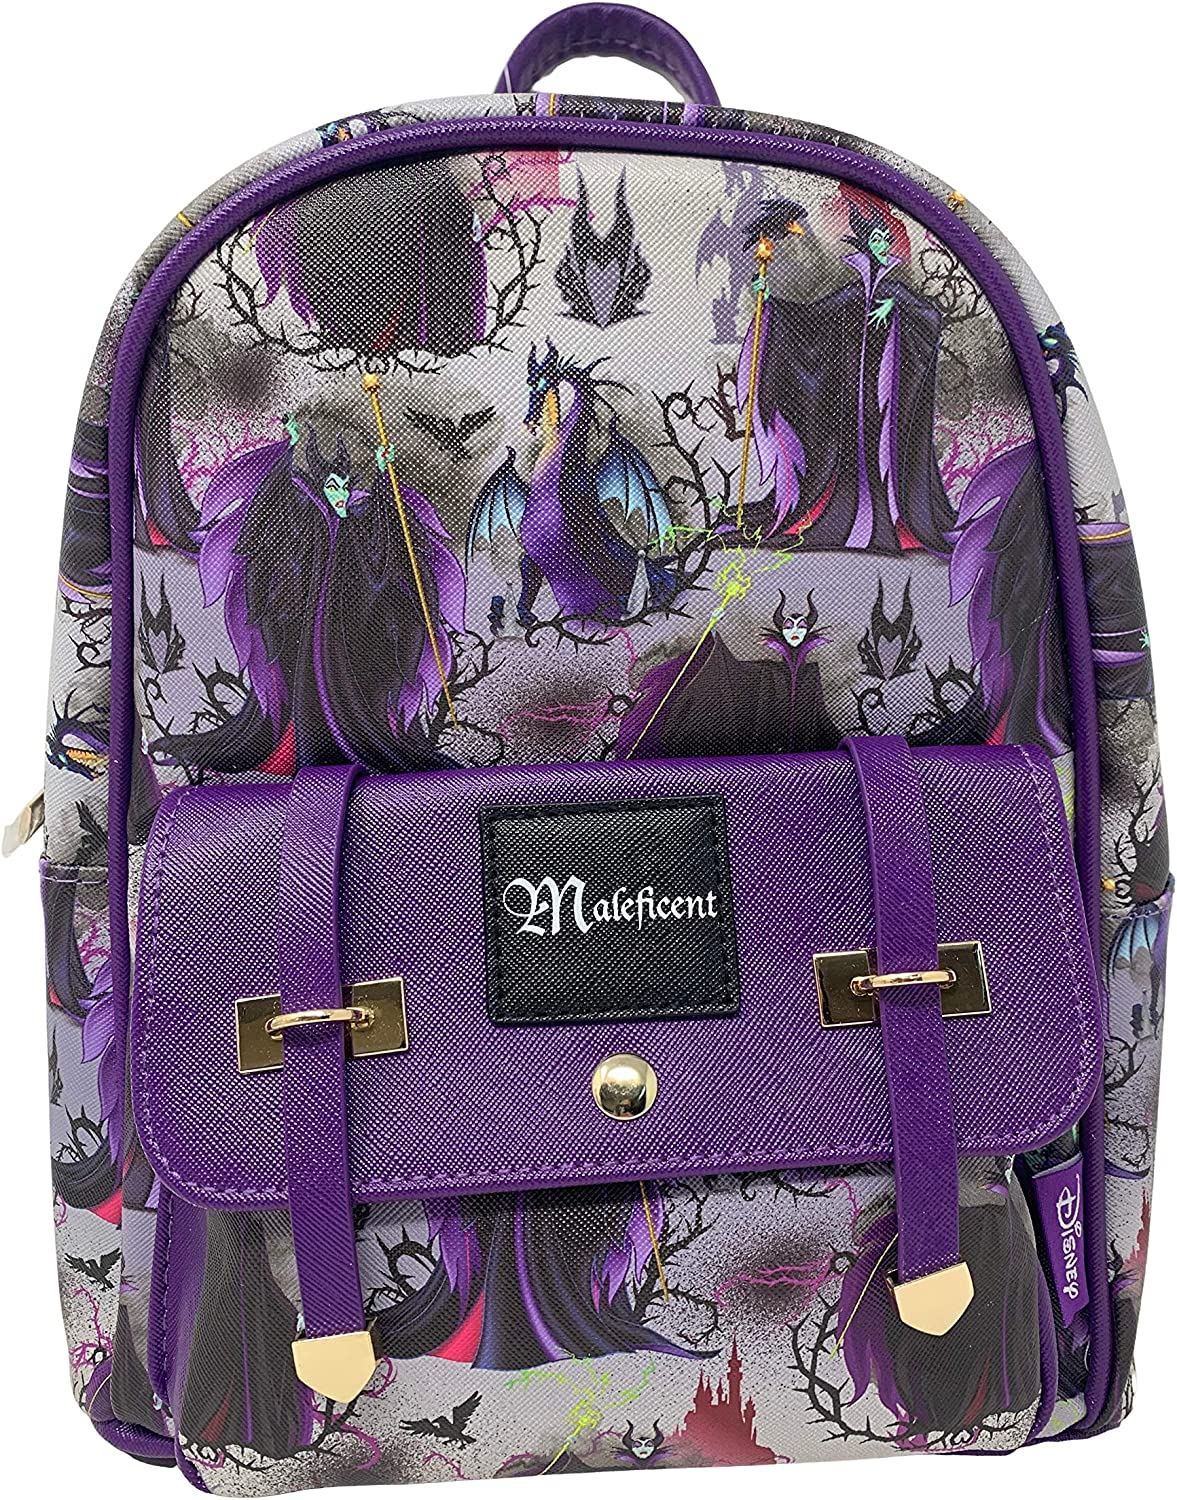 Disney s Villains – Maleficent 11 Faux Leather Mini Backpack -Purple